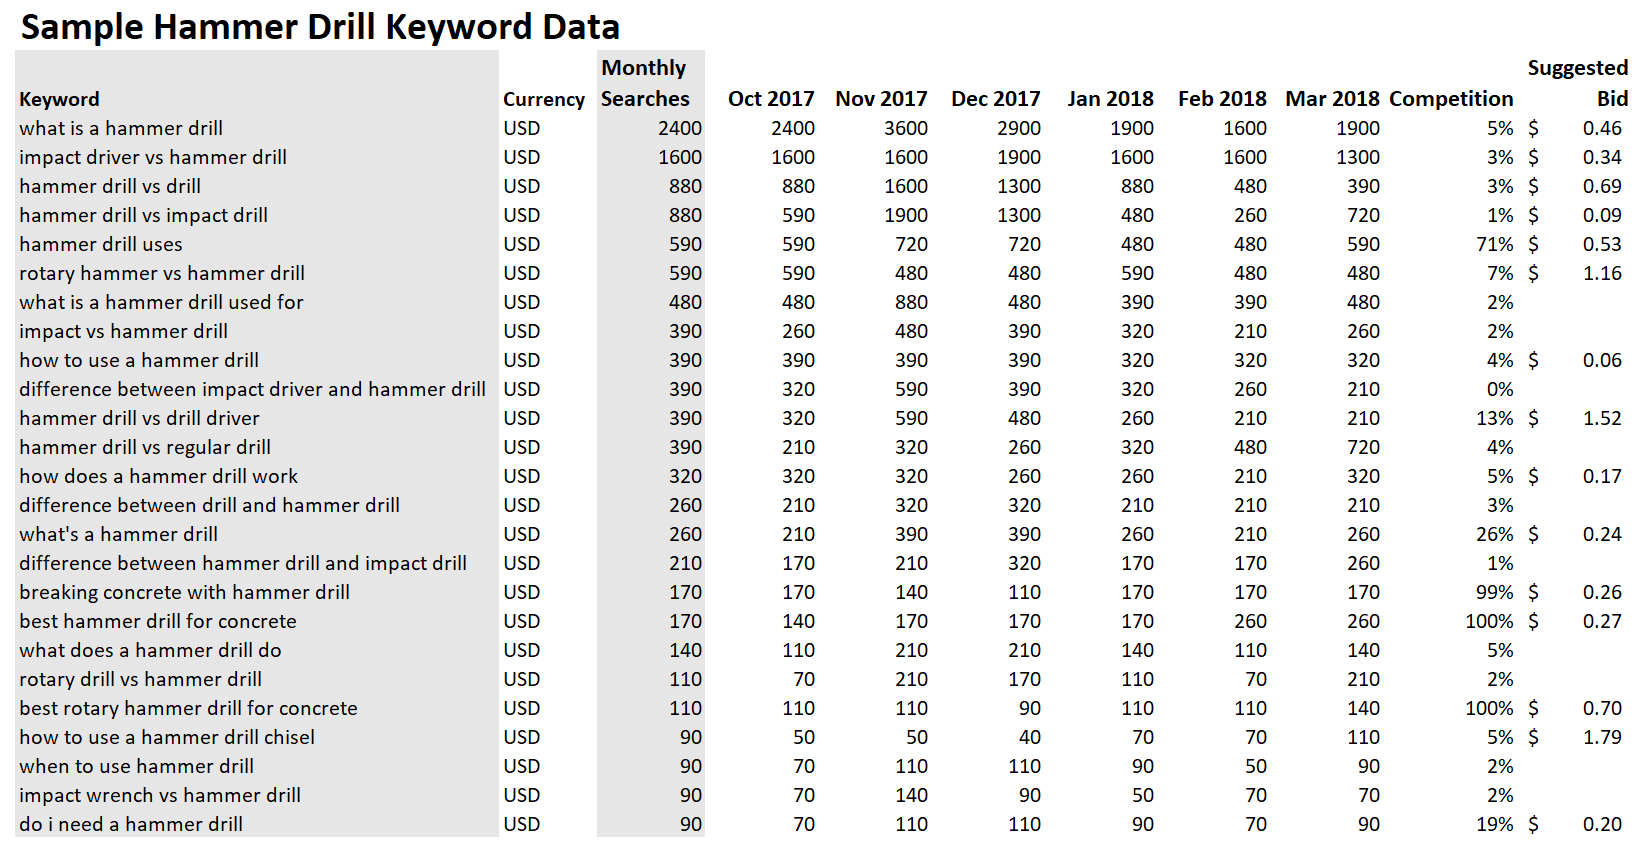 Informational intent keyword data on hammer drills from Google Keyword Planner.